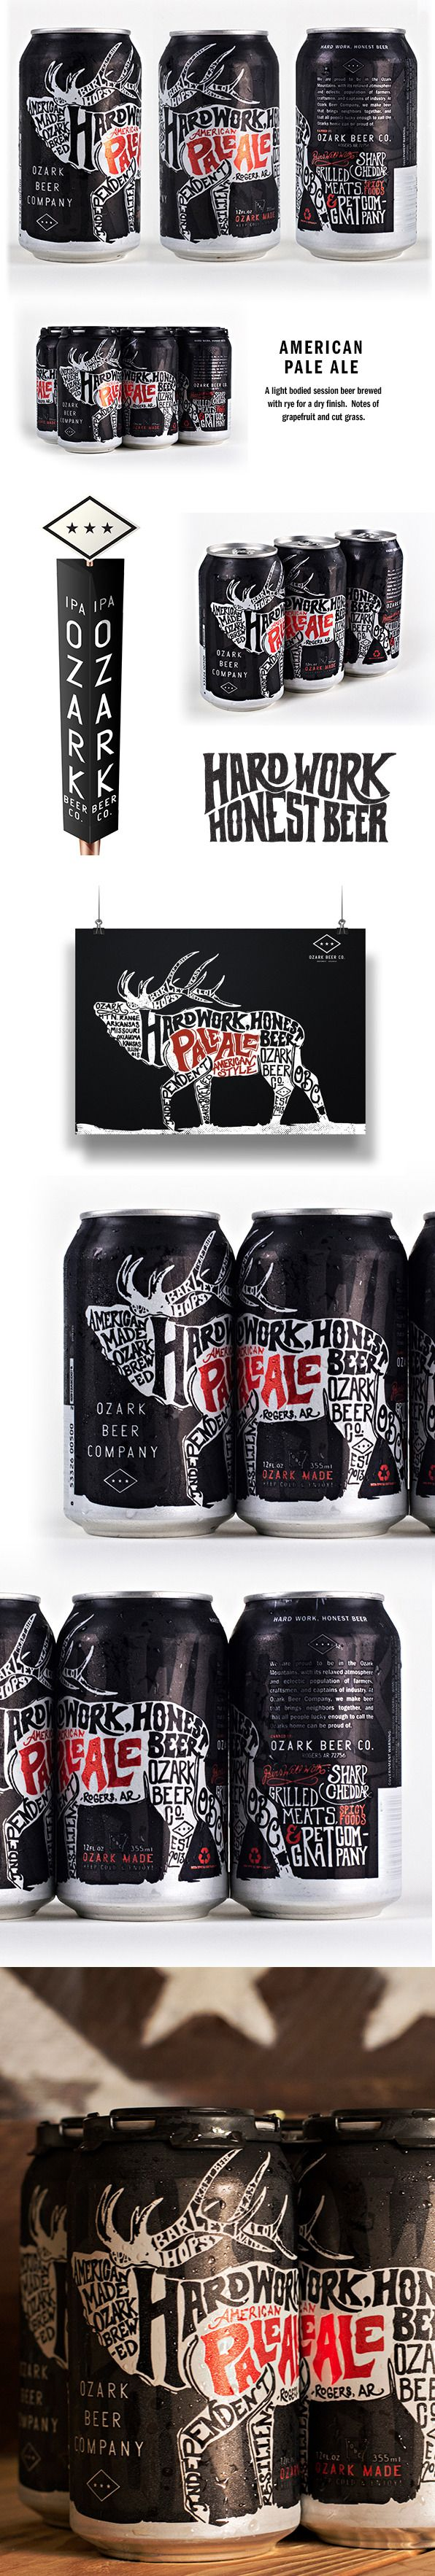 Ozark Beer Company - Can Design by Jeremy Teff